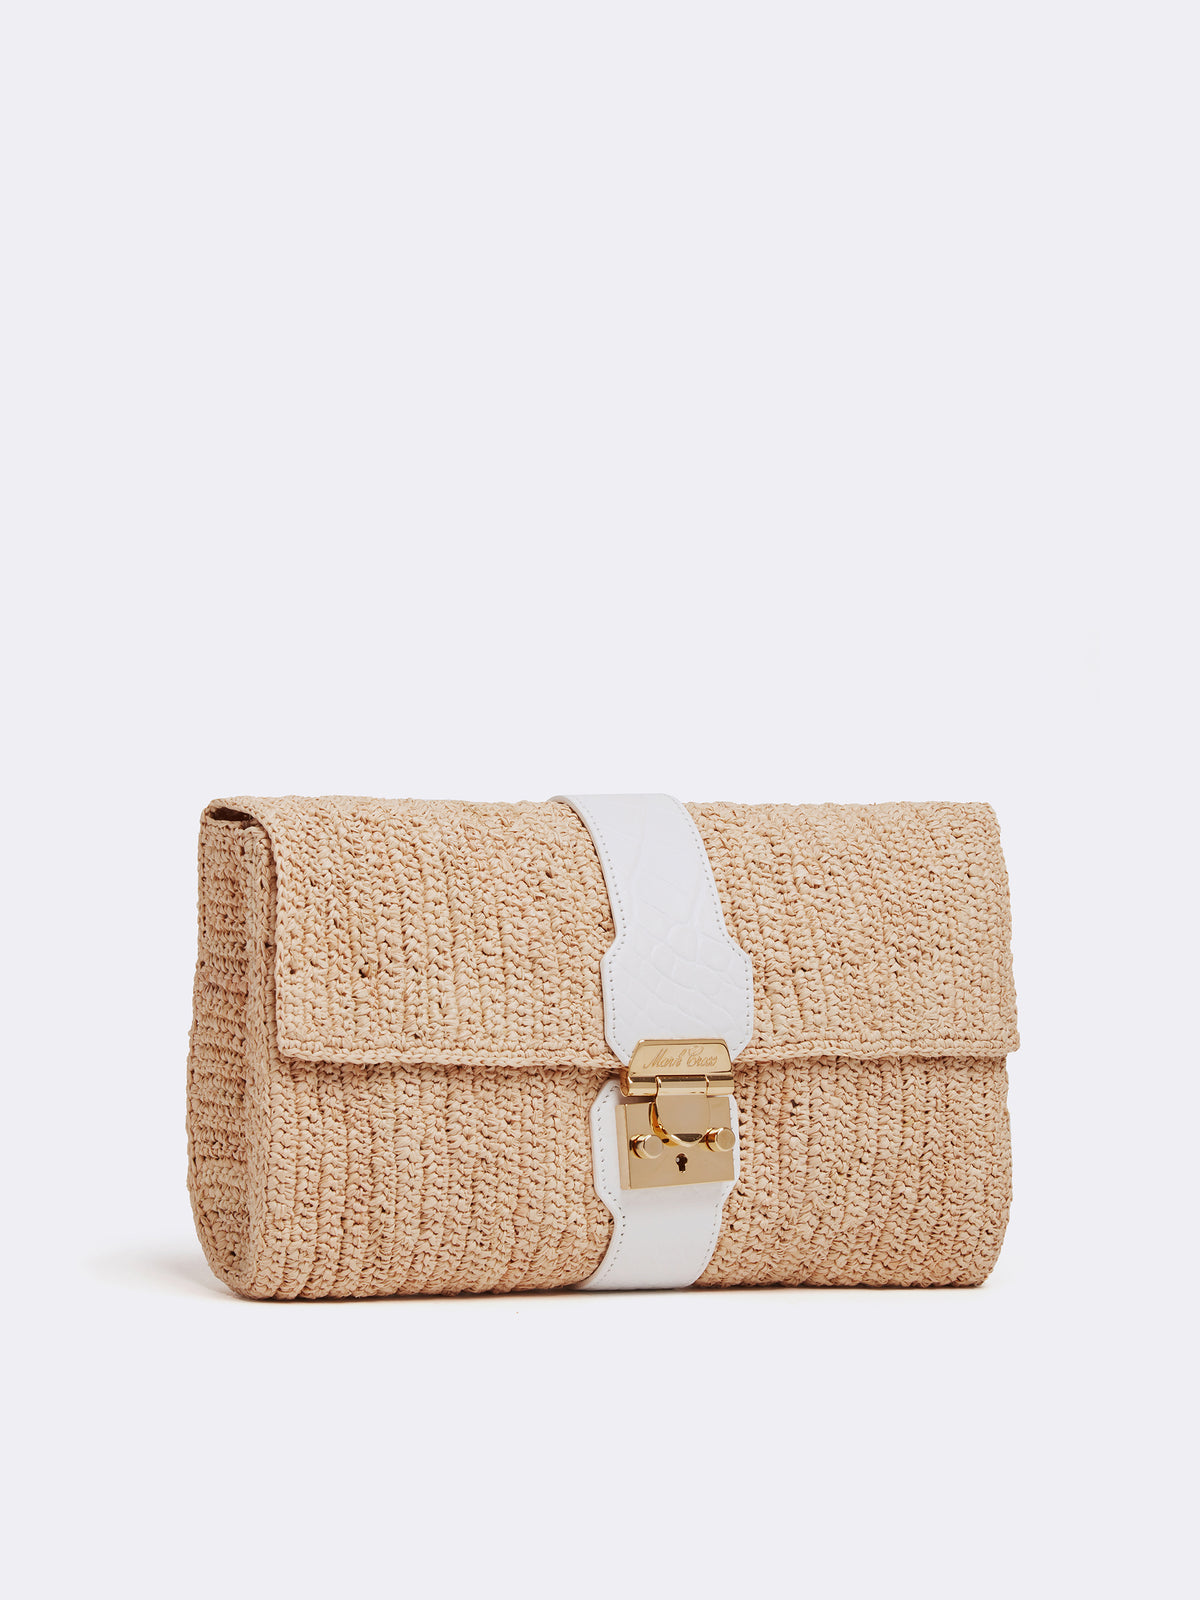 Mark Cross Sylvette Raffia & Leather Clutch Crocodile Stamped Soft Calf White / Natural Raffia Side